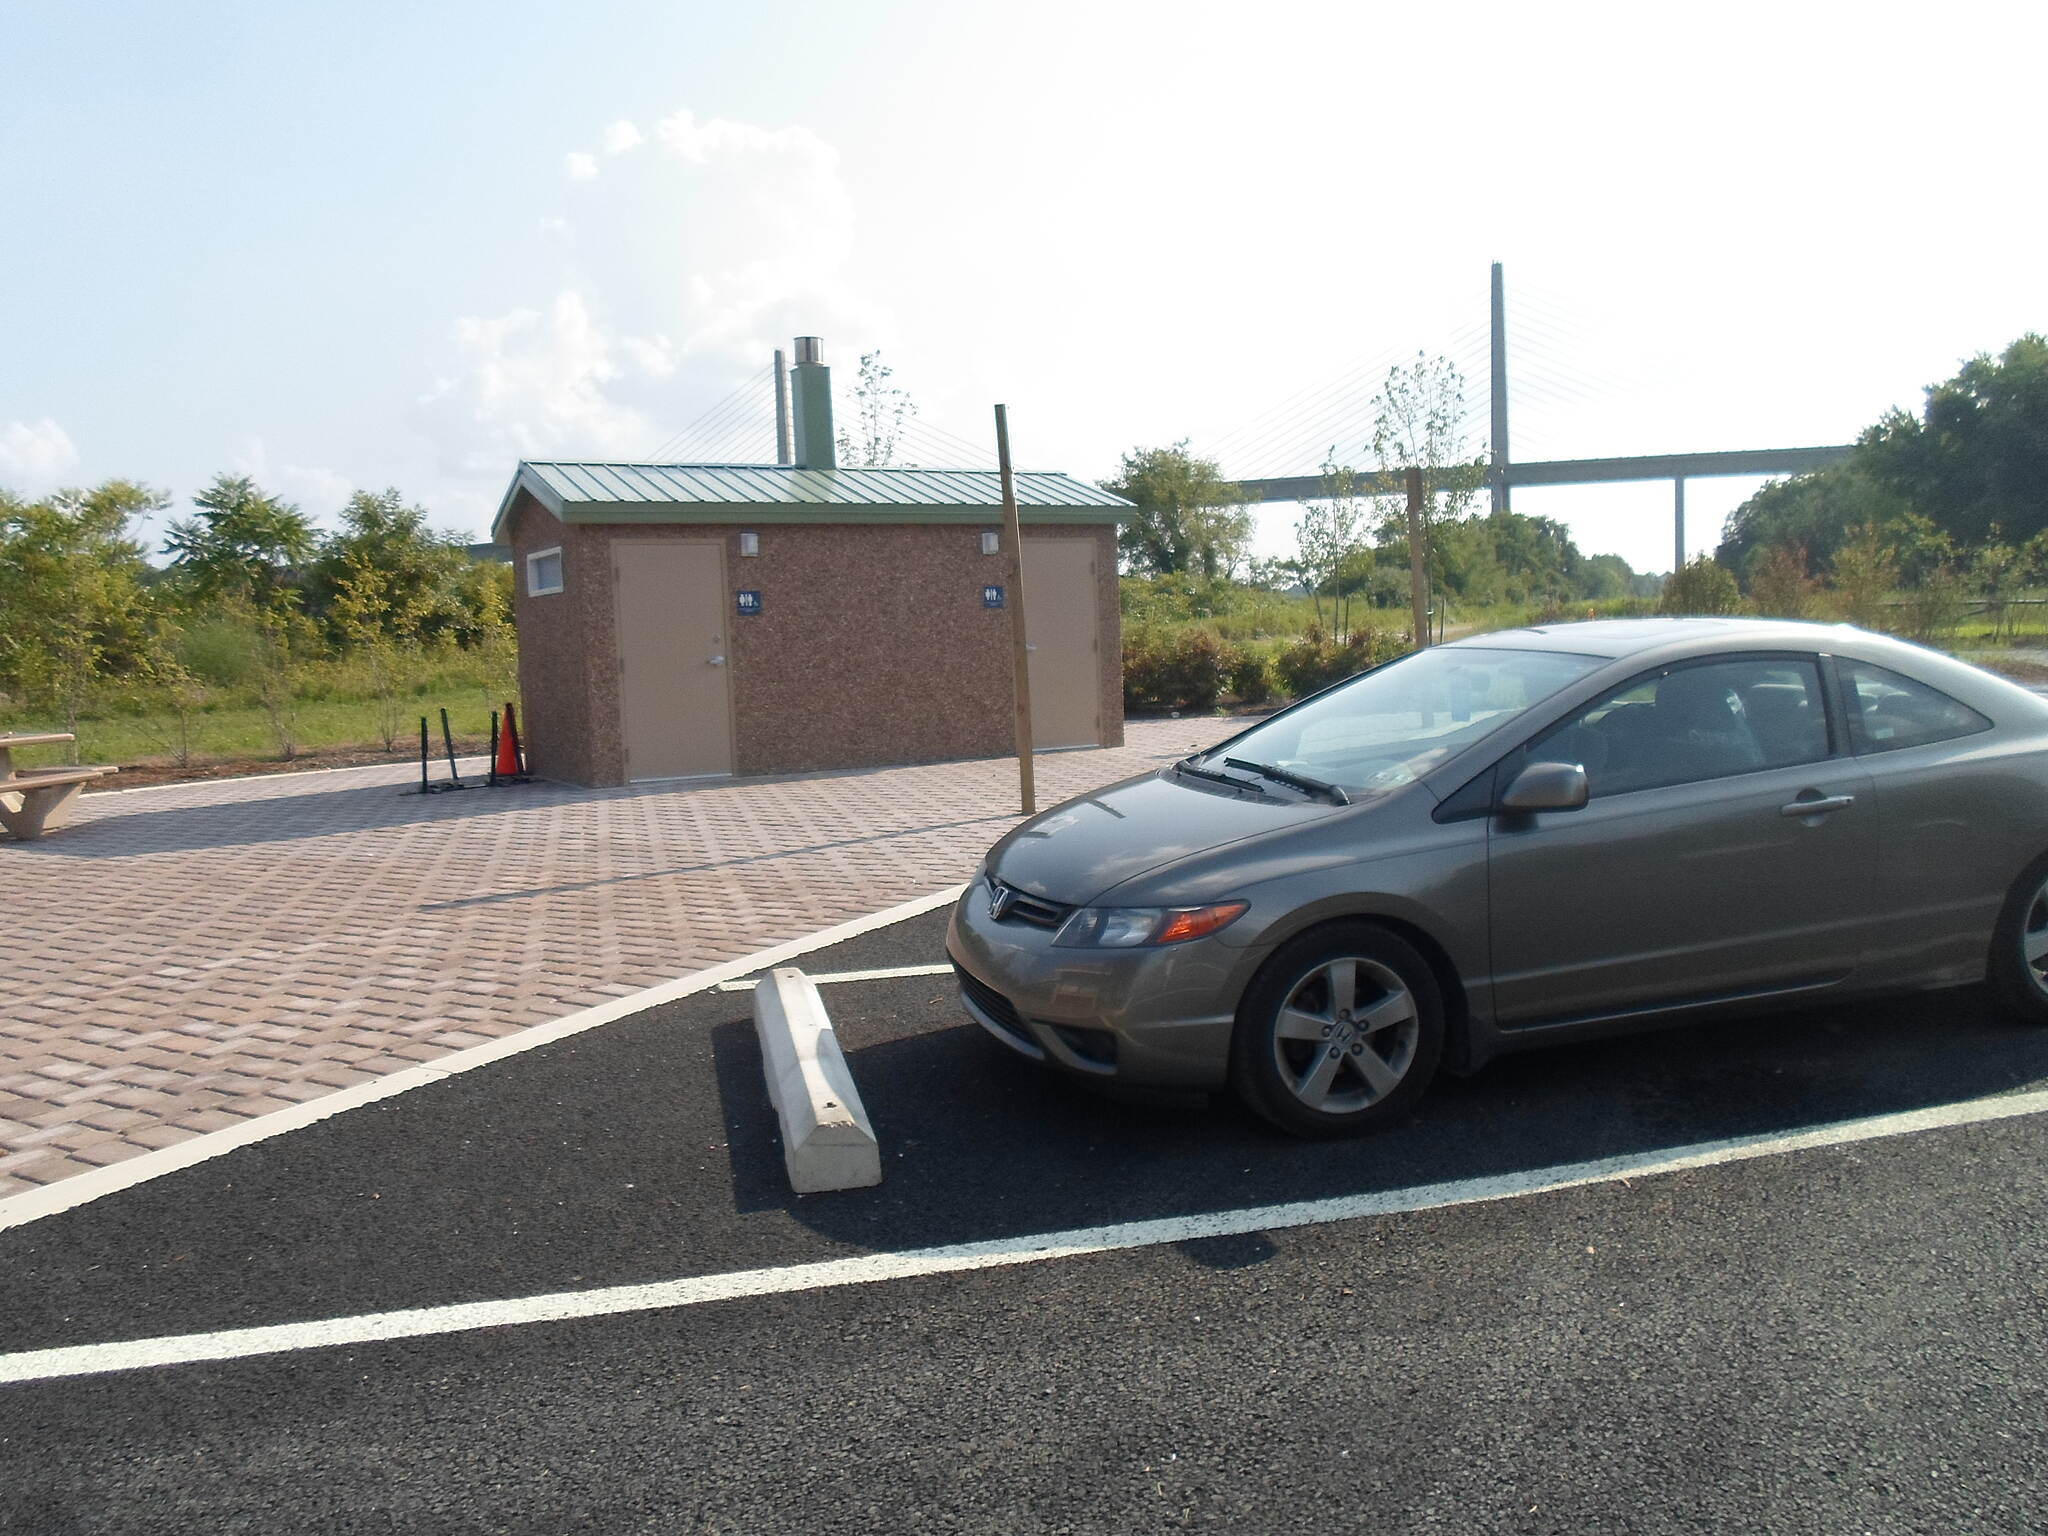 Michael Castle Trail Michael Castle Trail My car, parked at the St. Georges trailhead. Public restrooms are in the background. Taken August 2014.